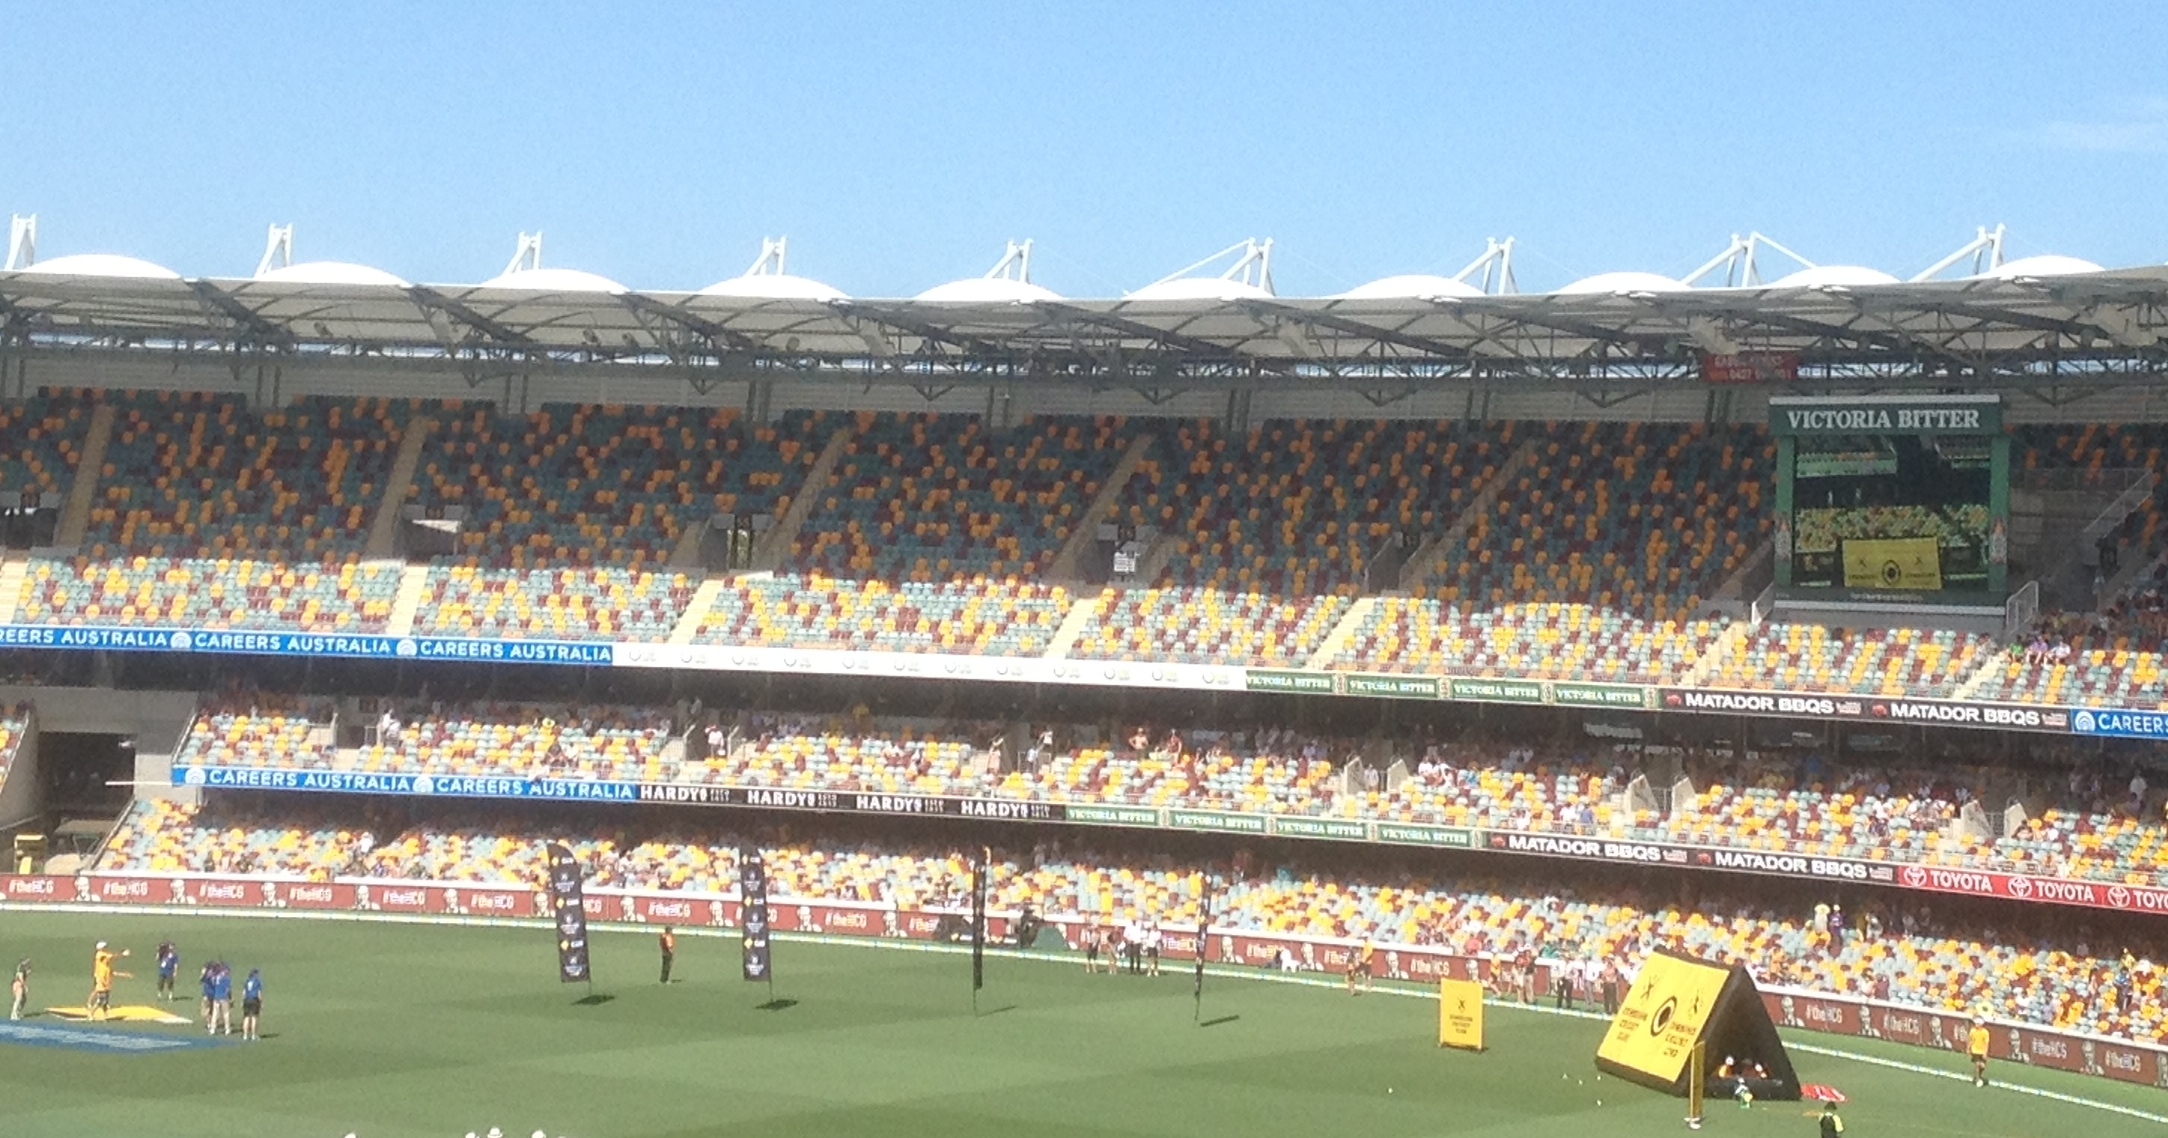 On field competition at the Gabba